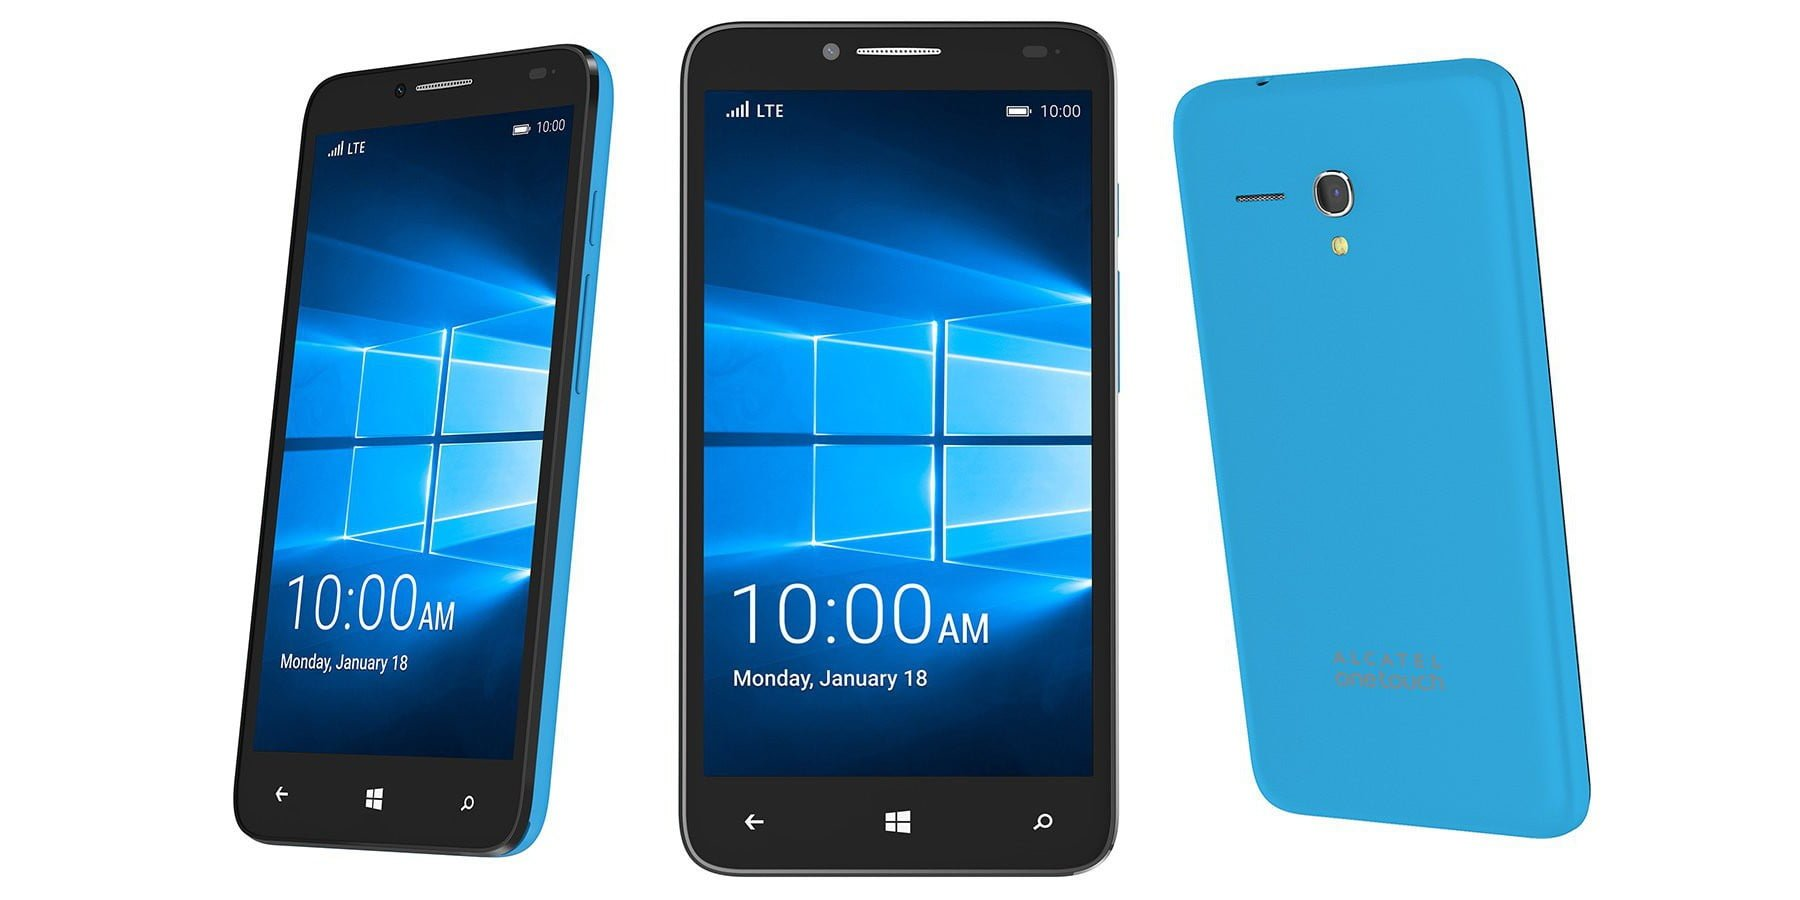 Tabletowo.pl Alcatel OneTouch Fierce XL - nowość z Windows 10 Mobile Alcatel Nowości Smartfony Windows